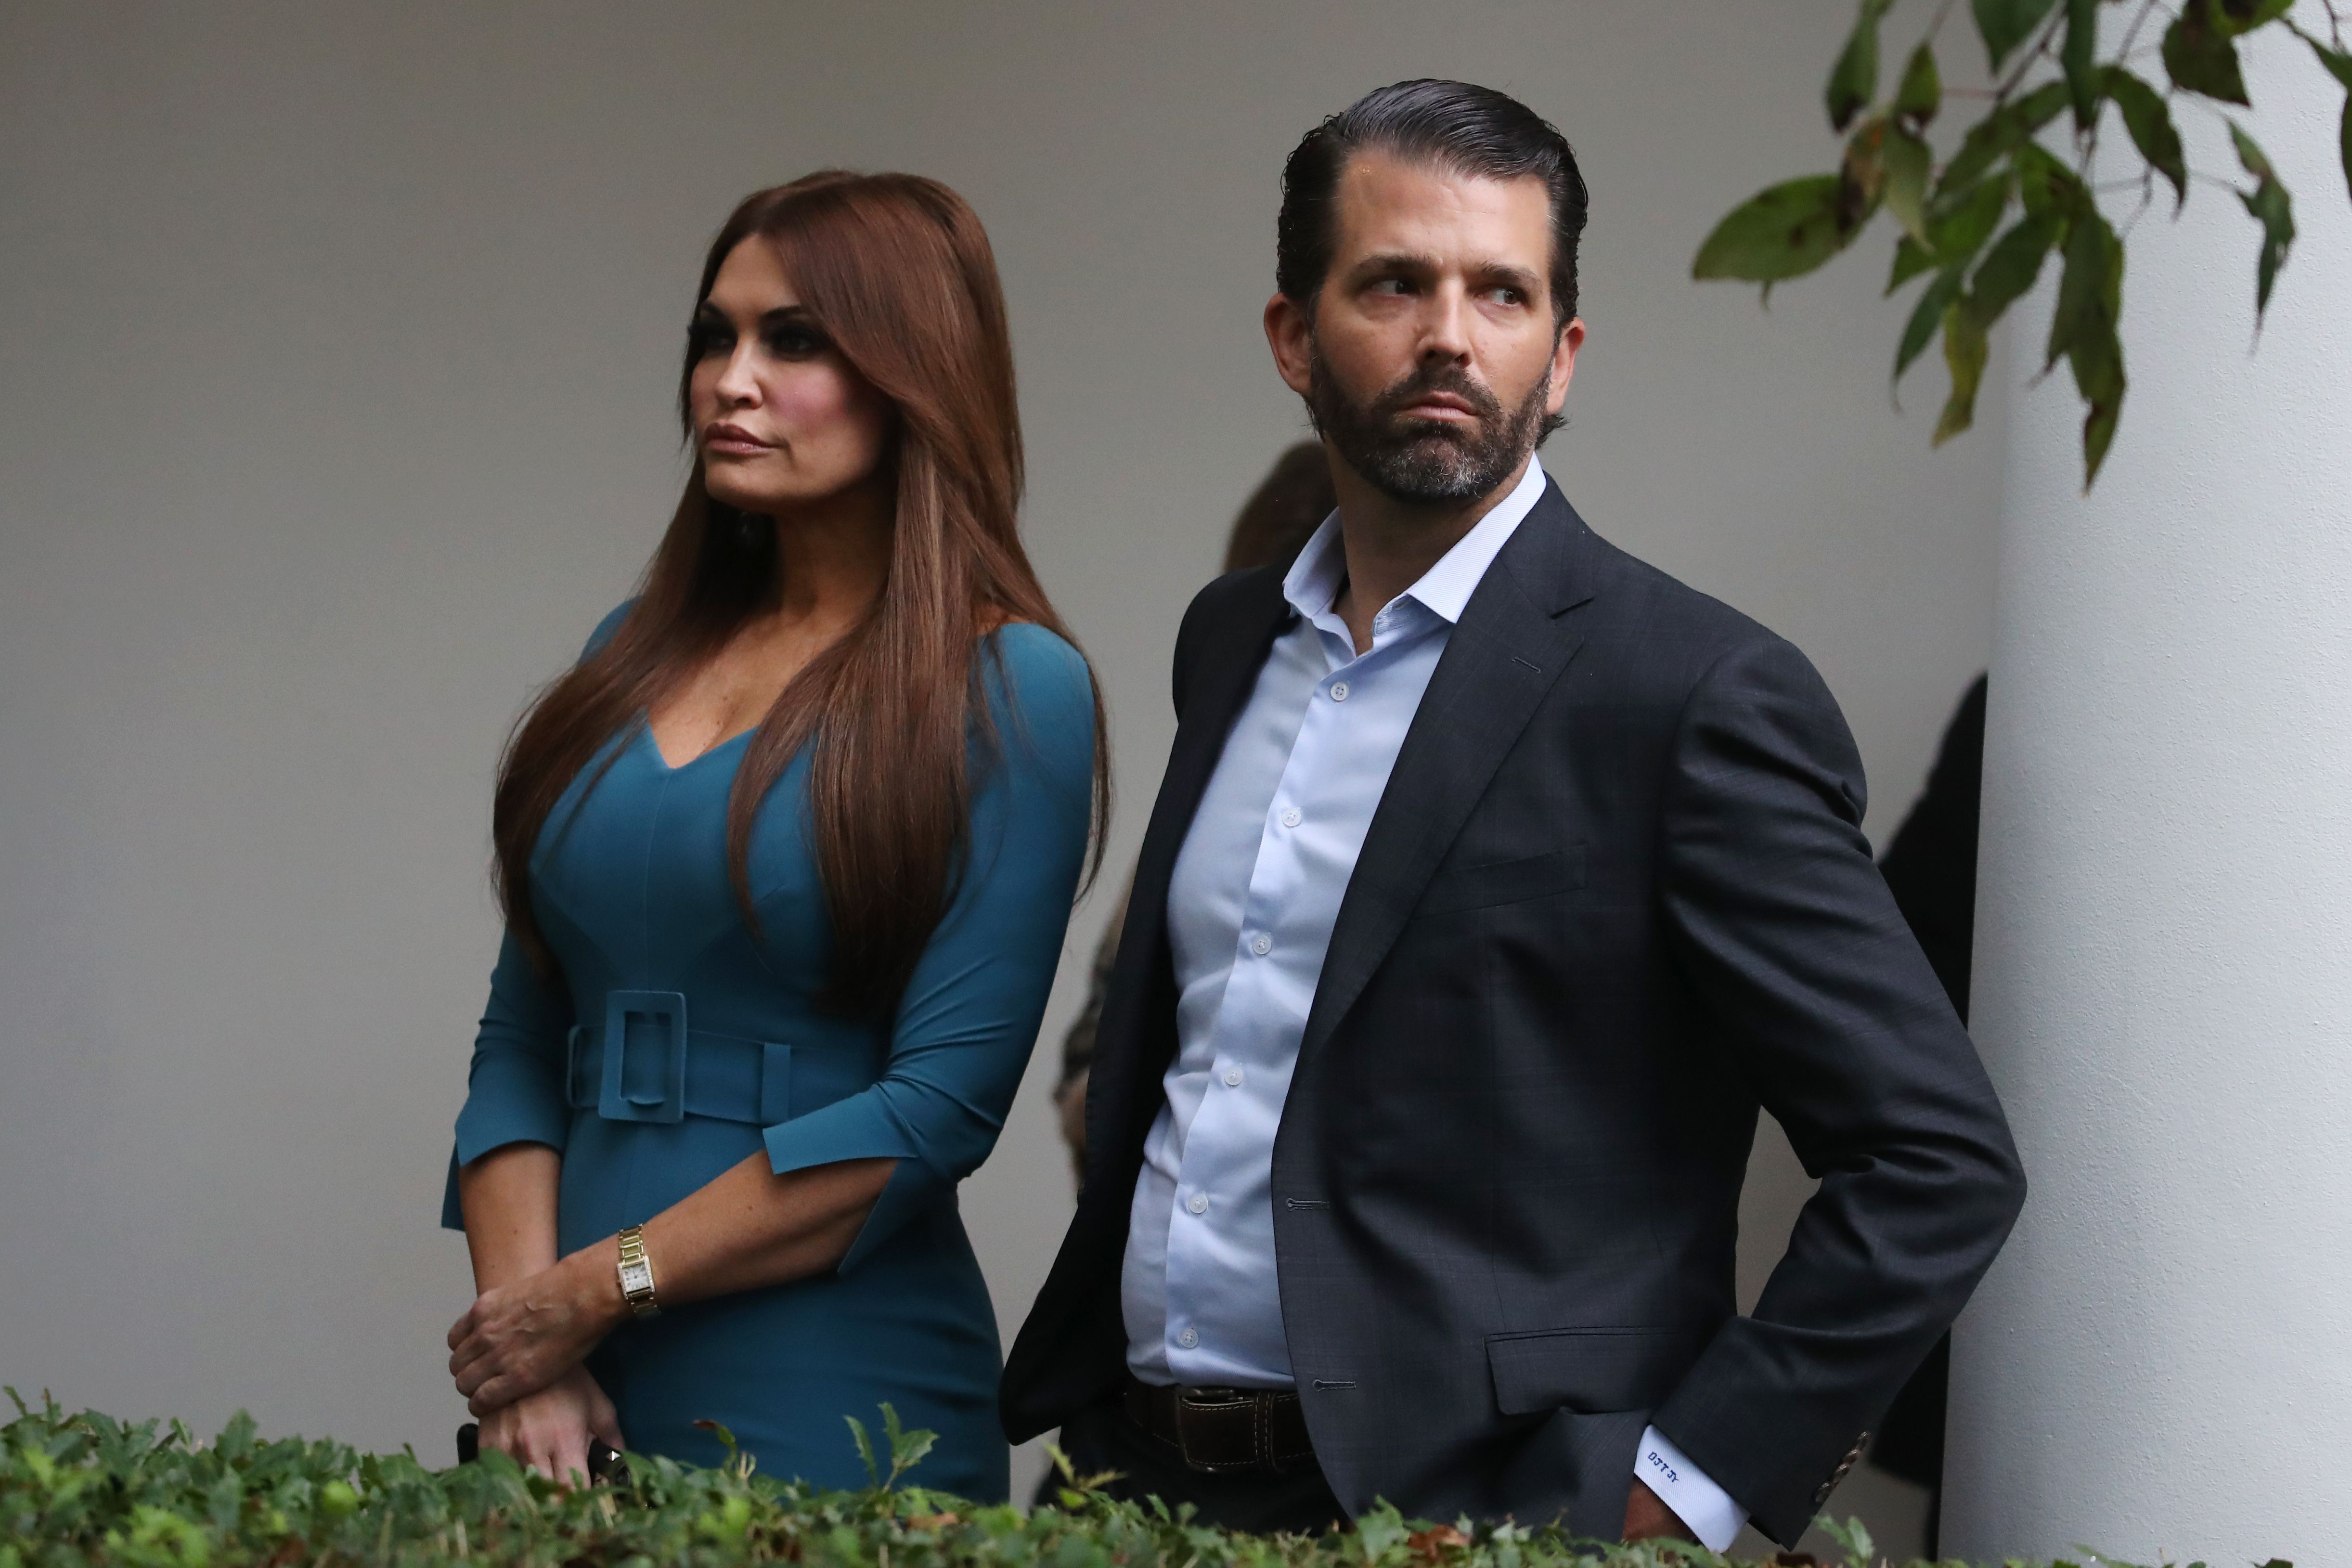 Kimberly Guilfoyle and Donald Trump Jr arriving to a press conference on the census by President Trump in the Rose Garden of the White House in Washington D.C. | Photo: Mark Wilson/Getty Images